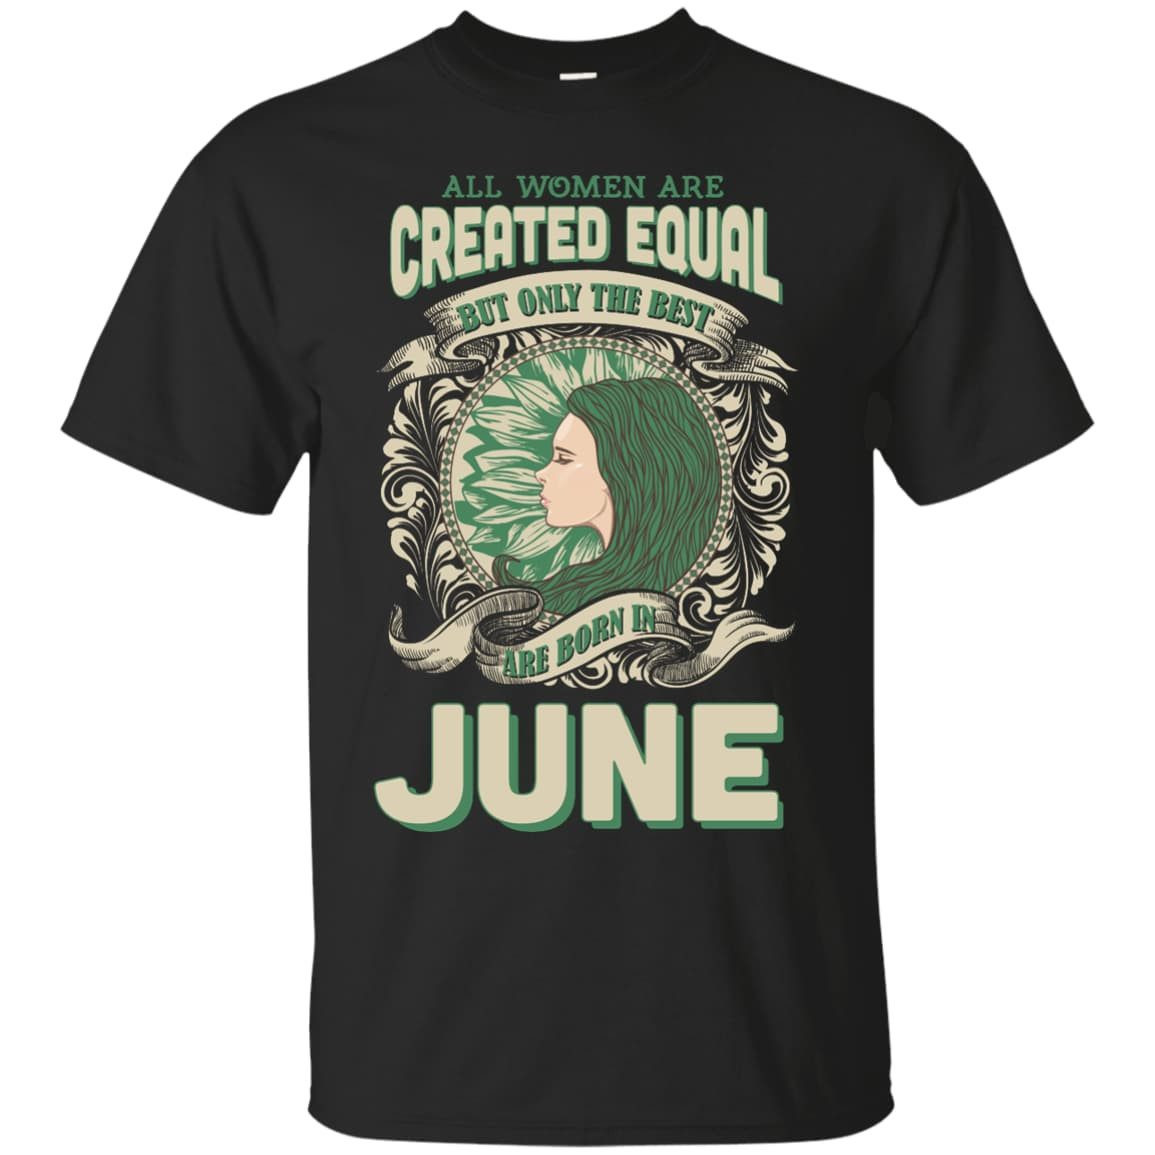 f32868885 All Women Are Created Equal The Best Born In JUNE Shirt & Hoodie ...